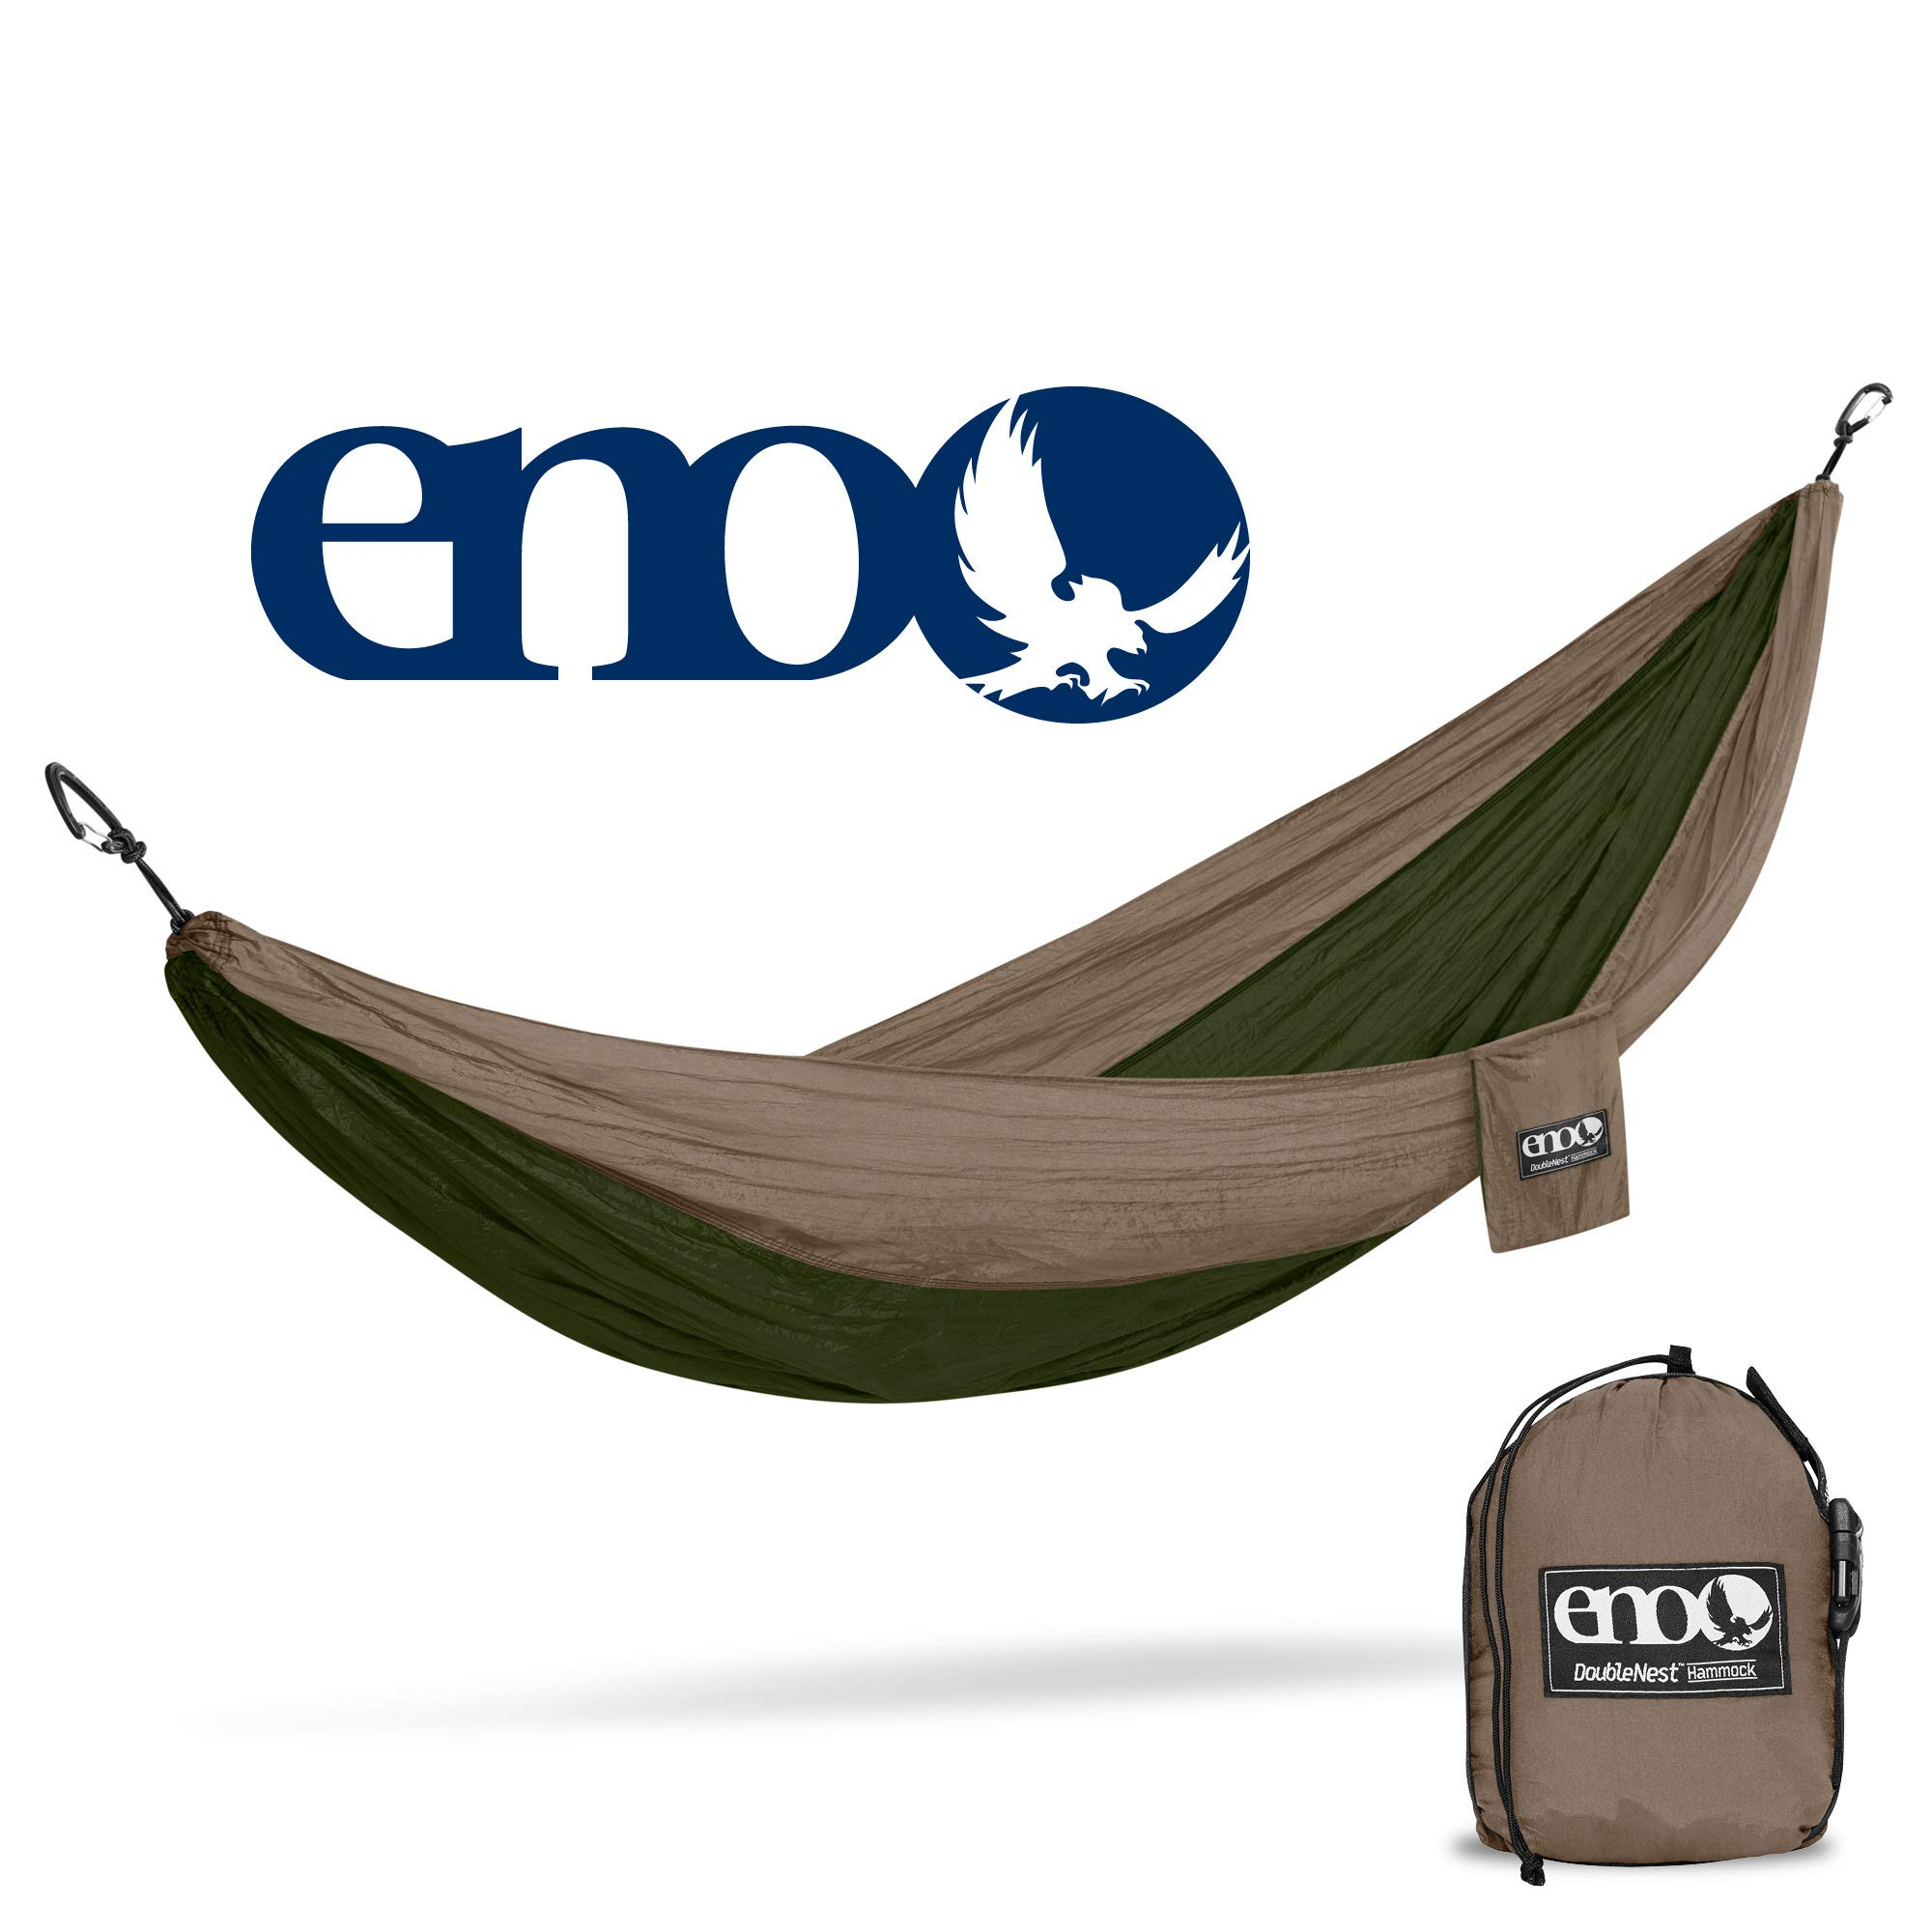 ENO - Eagles Nest Outfitters DoubleNest Hammock with Insect Shield Treatment, Khaki/Olive by ENO